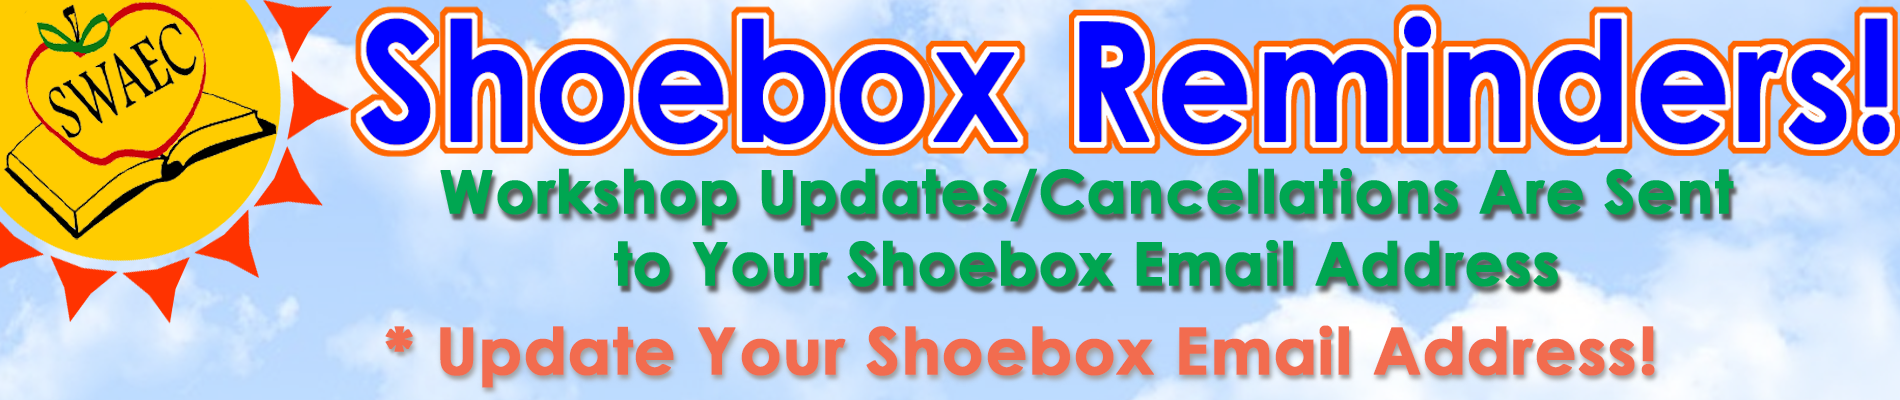 Update your shoebox email address